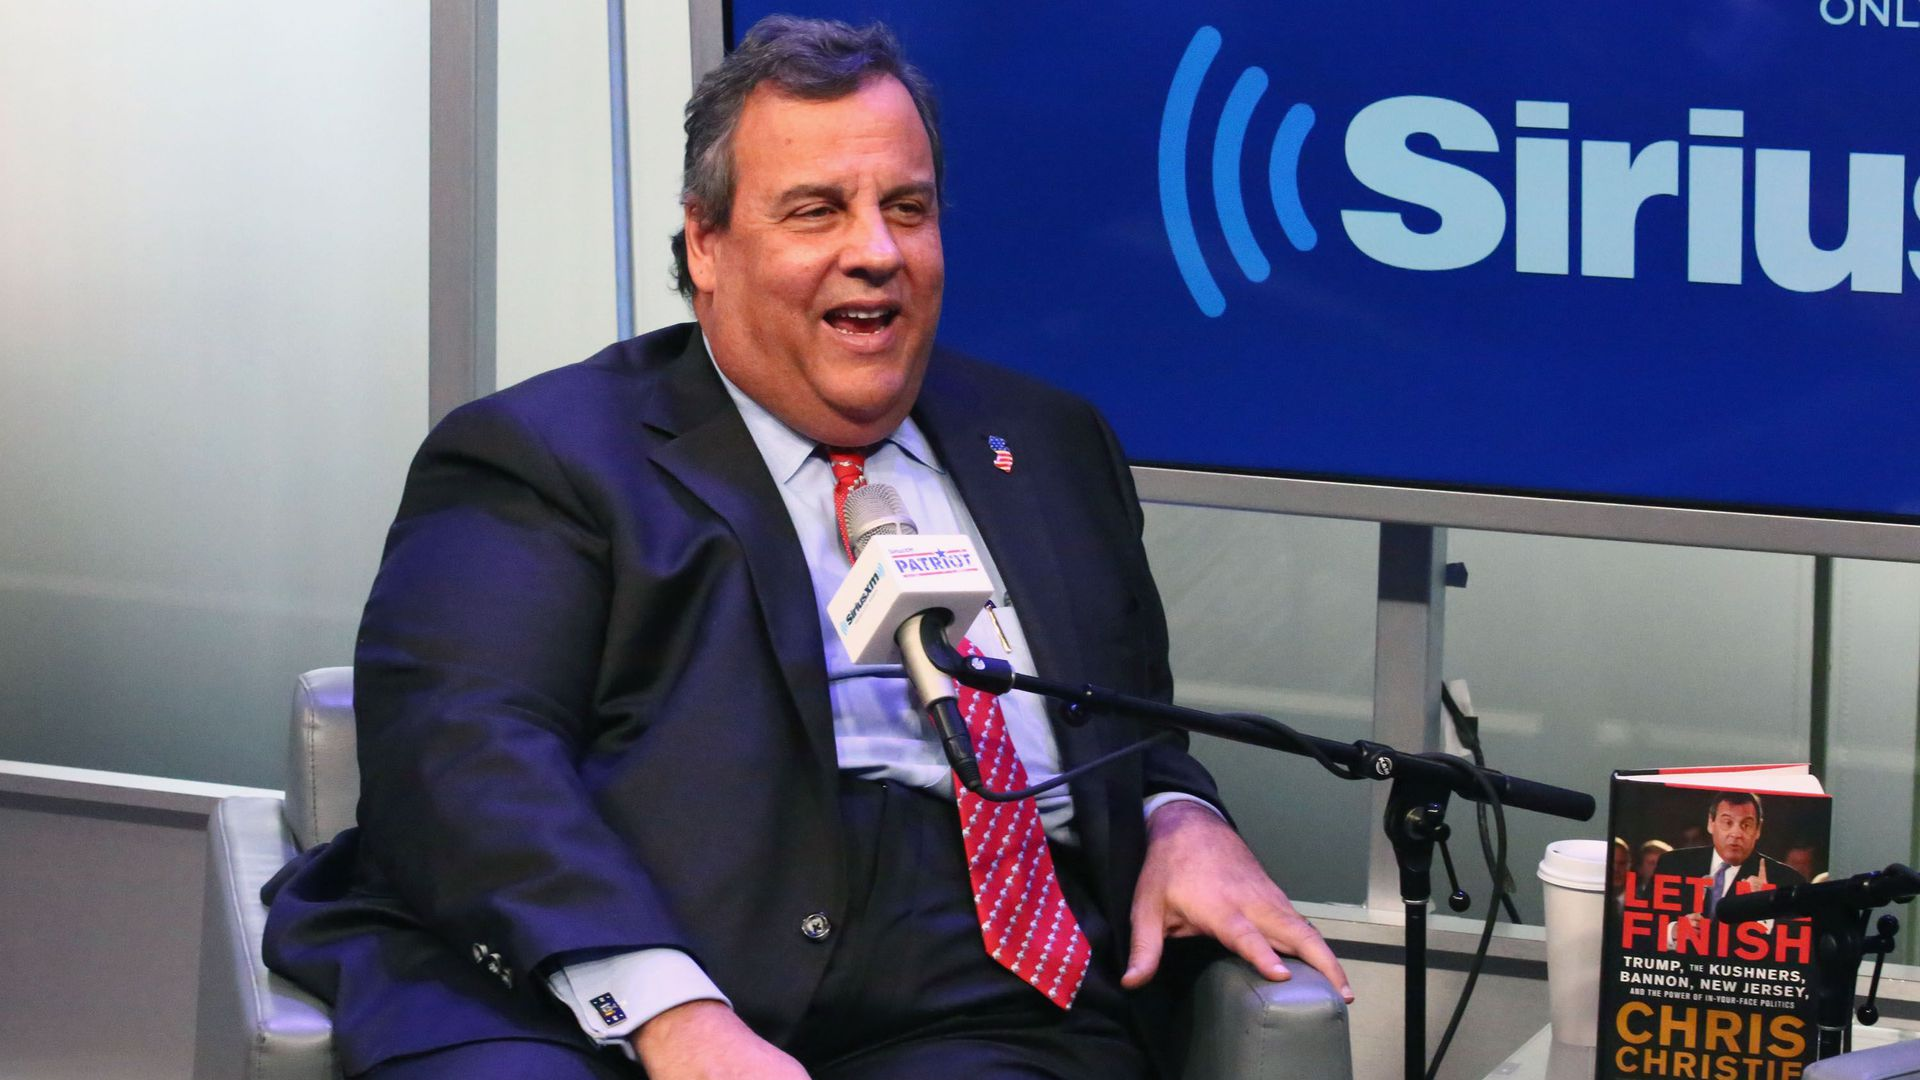 chris christie on sirius xm event